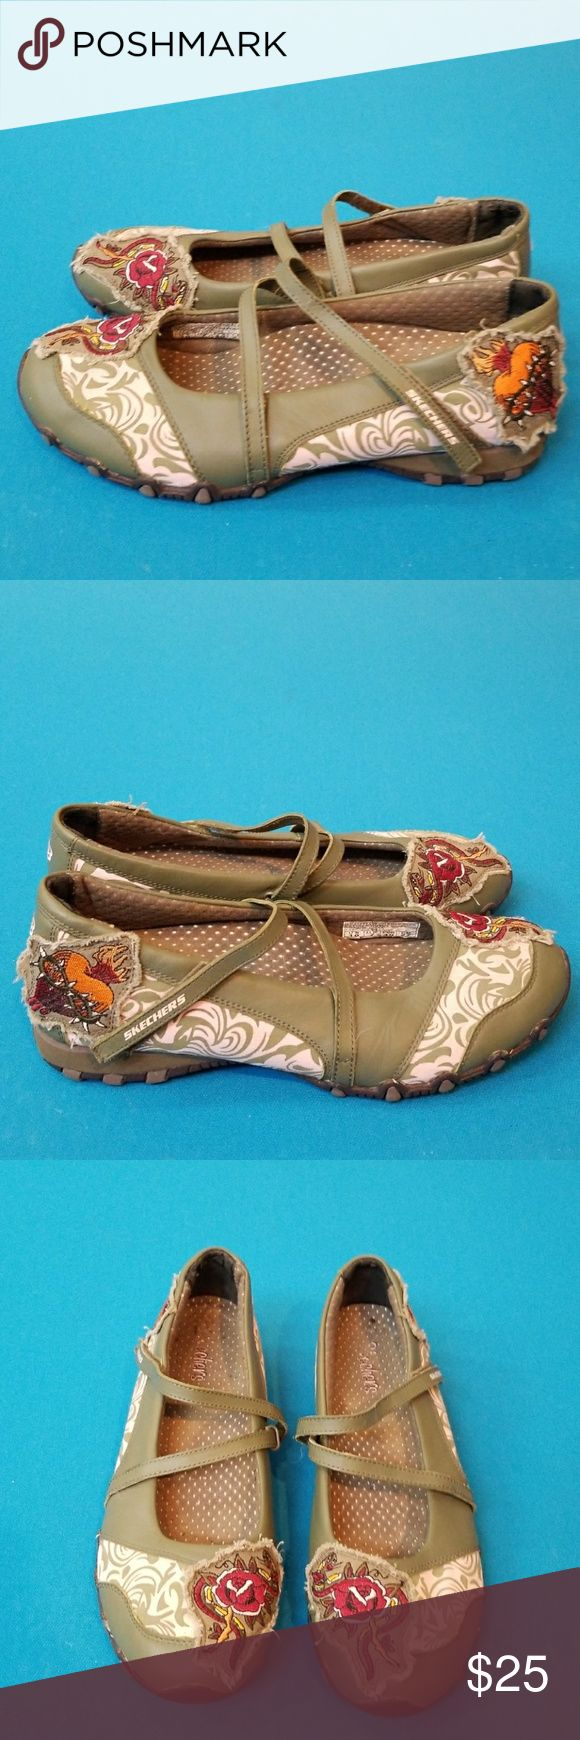 SKECHERS BALLET FLATS MARY JANE SHOES WOMENS 10 Excellent pre-owned condition.  Distressed LOOK.  Multi-colored.  Cool looking shoes! Skechers Shoes Flats & Loafers